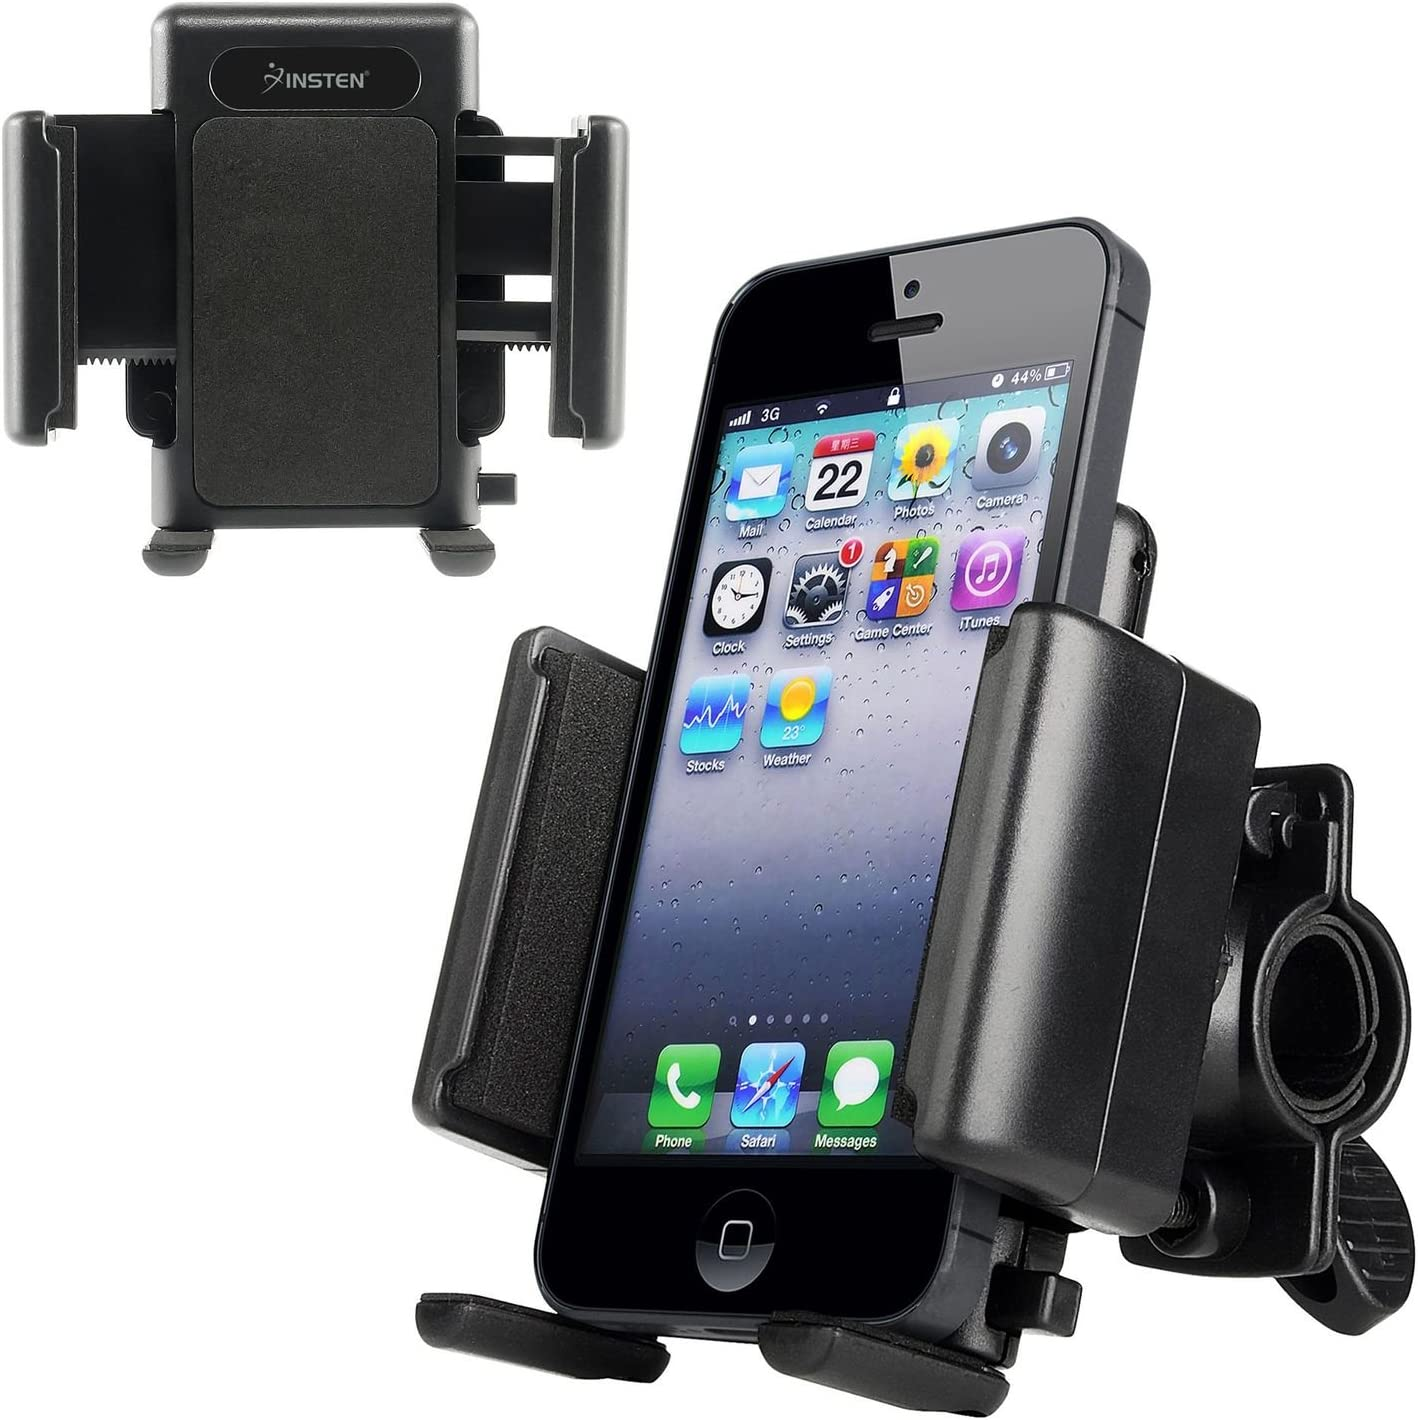 INSTEN Bike Mount Bicycle Phone Holder Ram Mount Compatible with iPhone X//XS//XS Max//XR//8 Plus//7//7 Plus//6S//6S Plus//Samsung Galaxy S10//S10 Plus//S10e//S9//S9 S8 Plus//S7 Edge//S7 Black S9 Plus//S8//S8